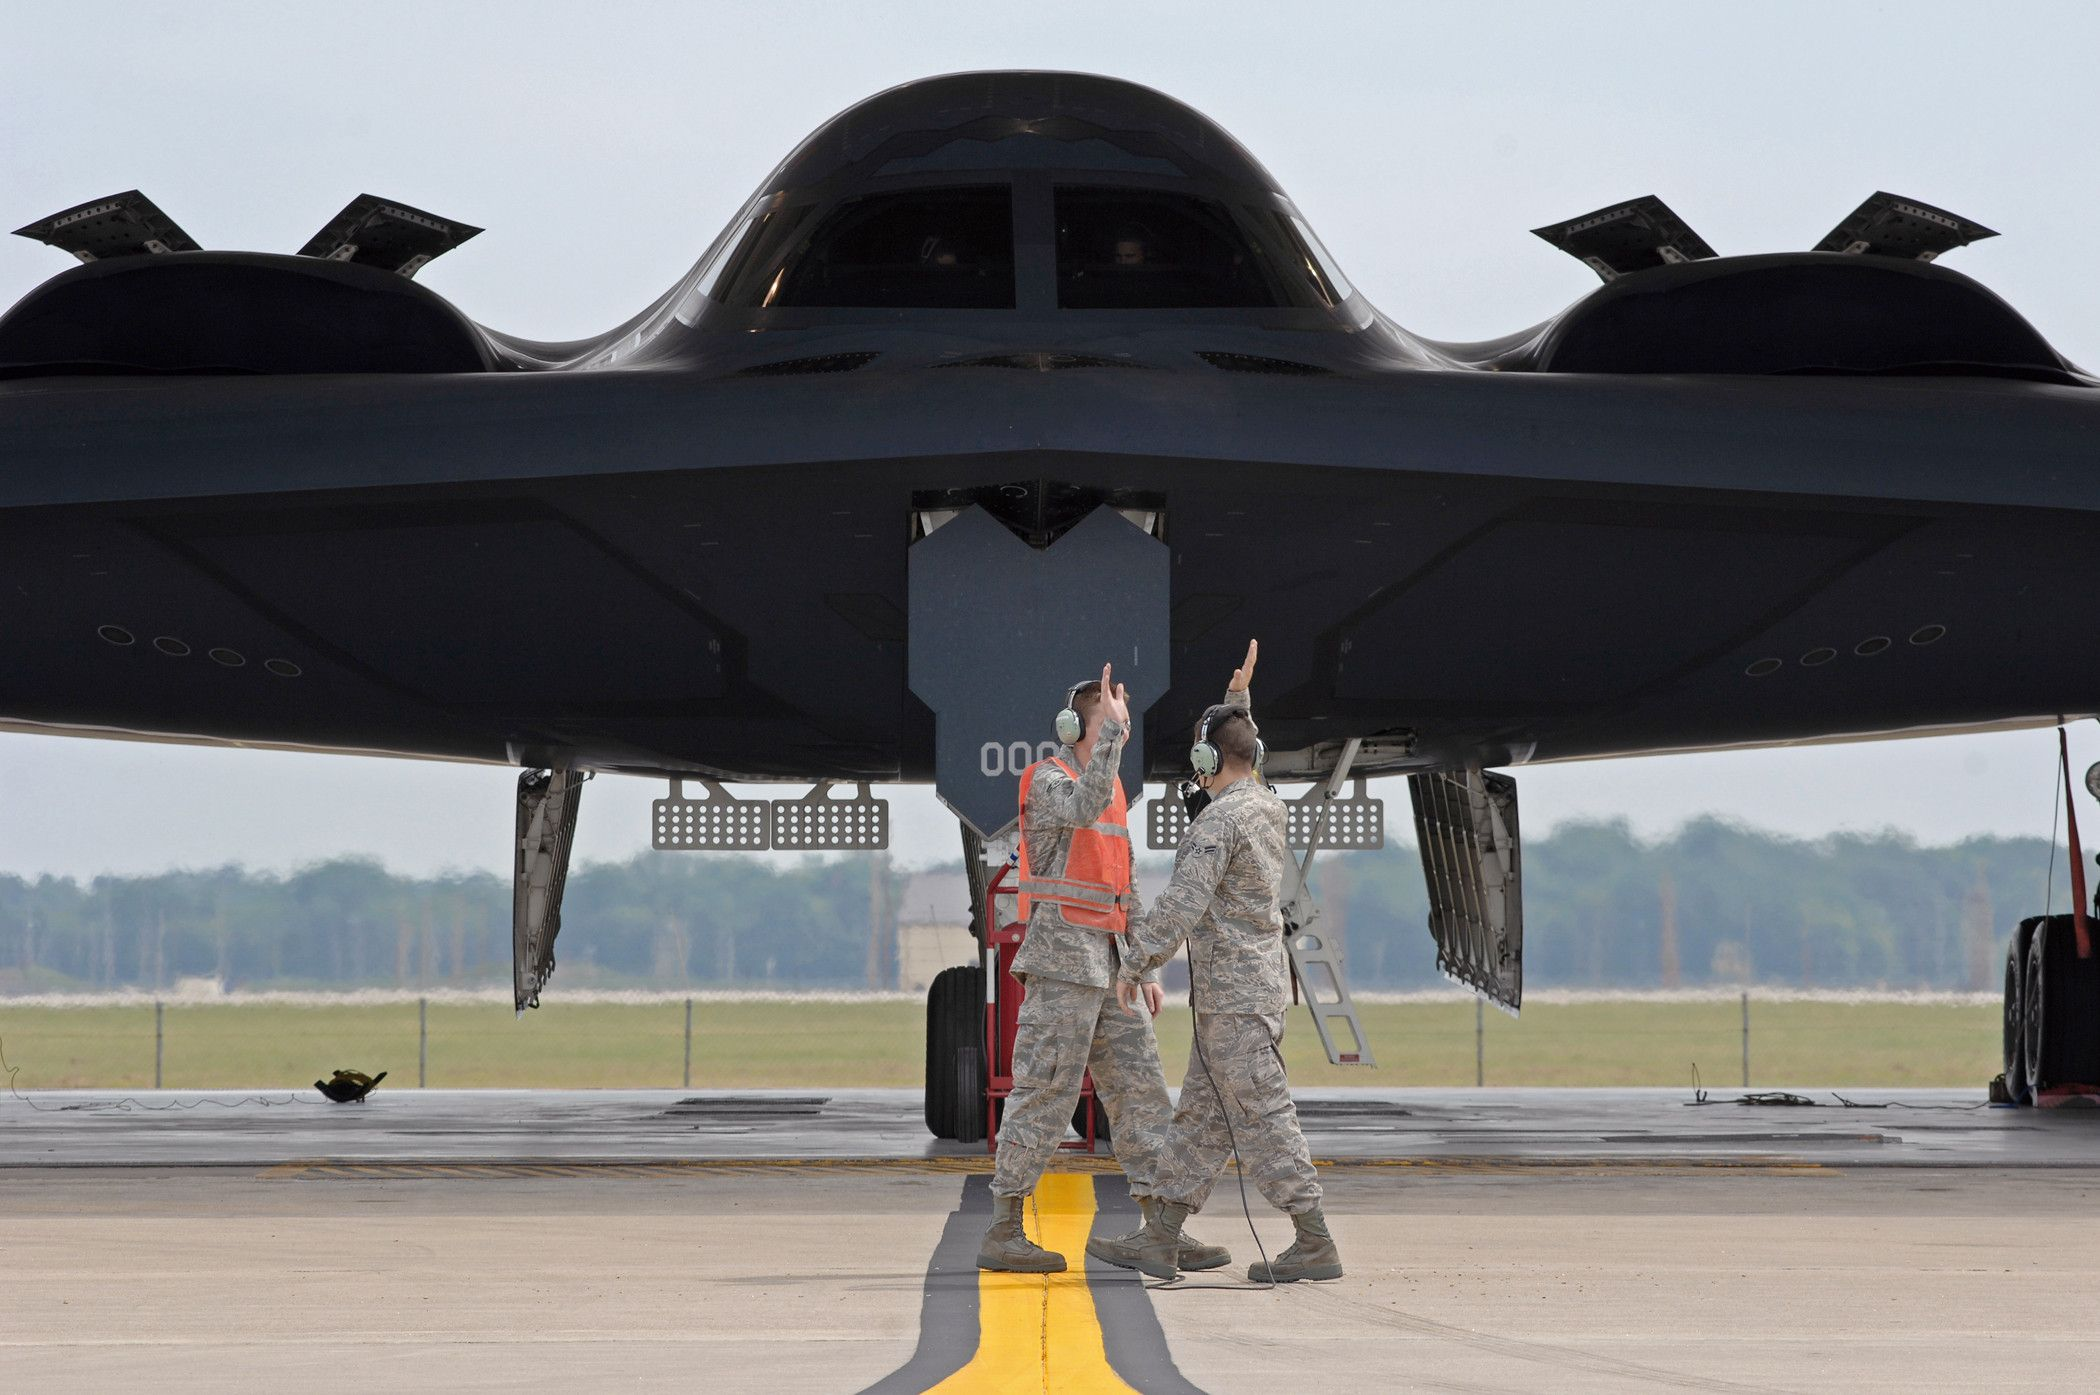 A pair of air force guys giving each other a high five